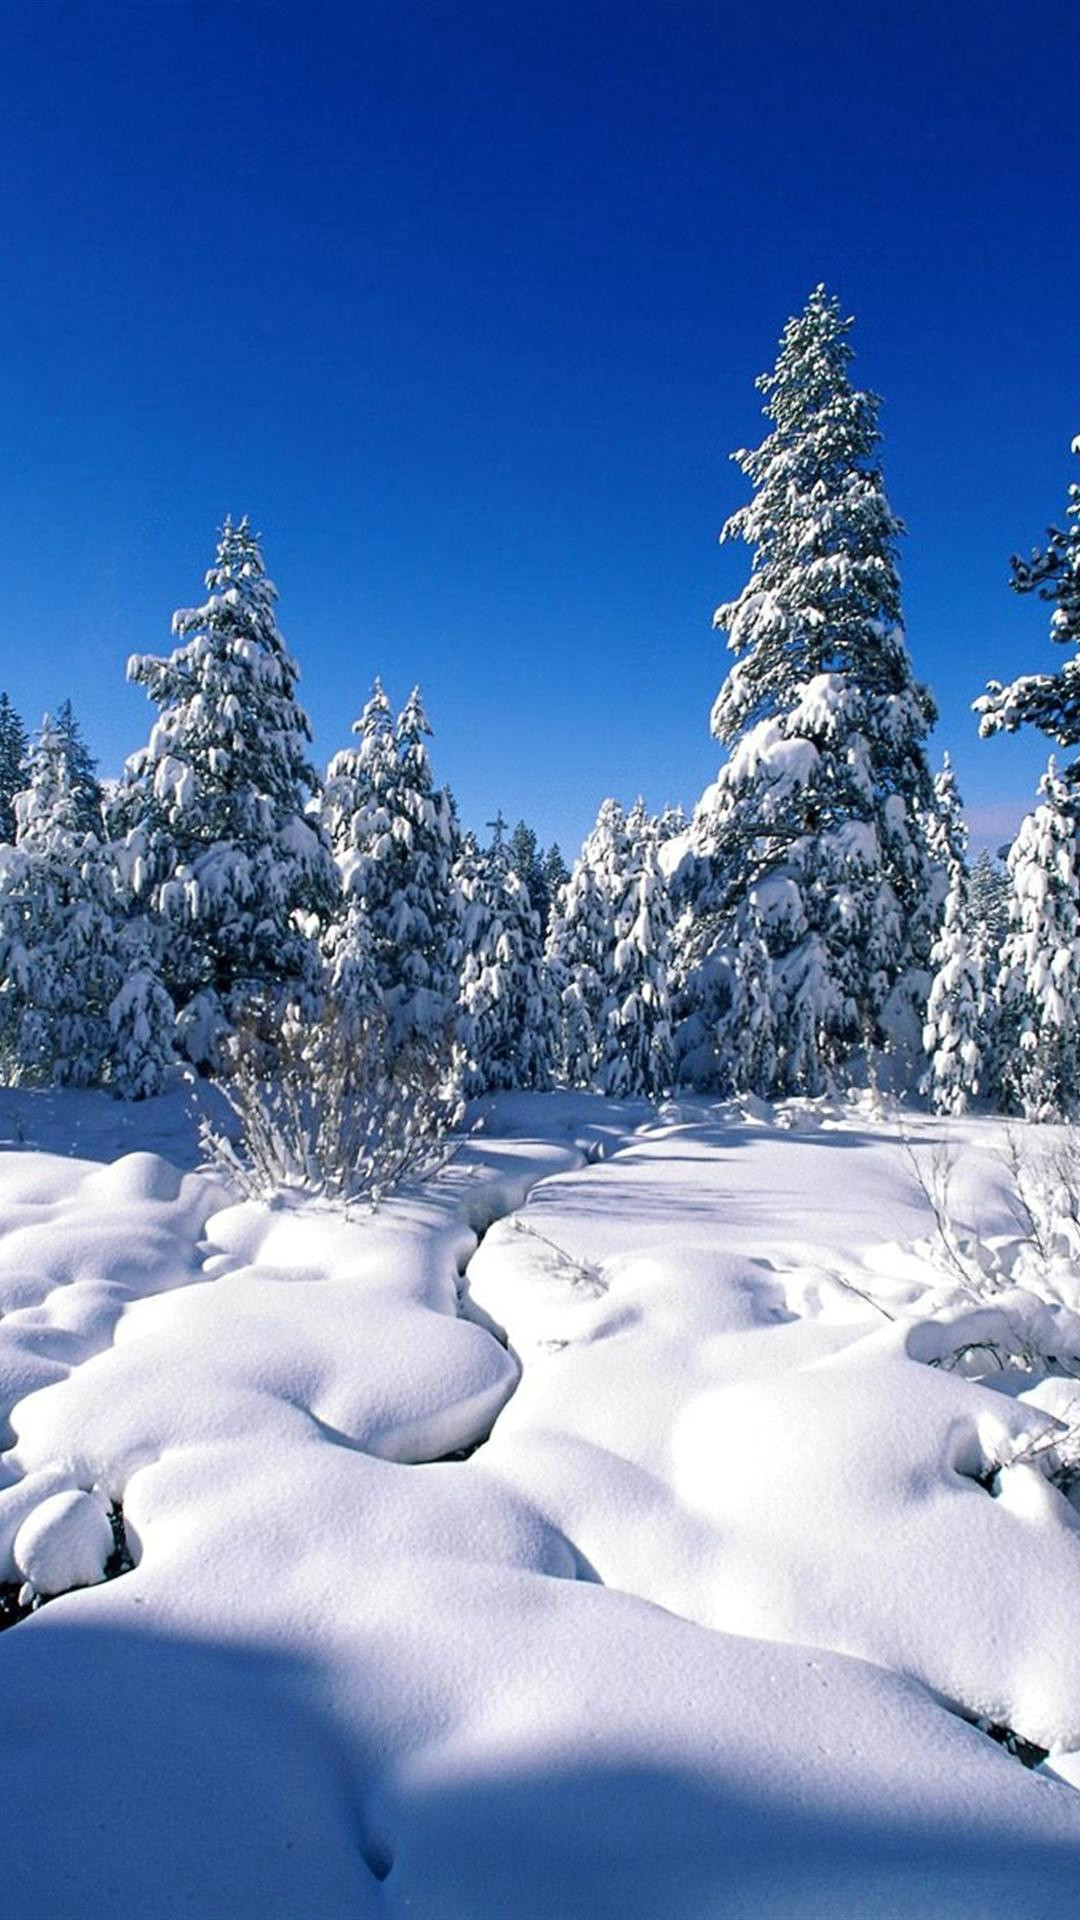 Winter Wallpaper for Iphone Download Free